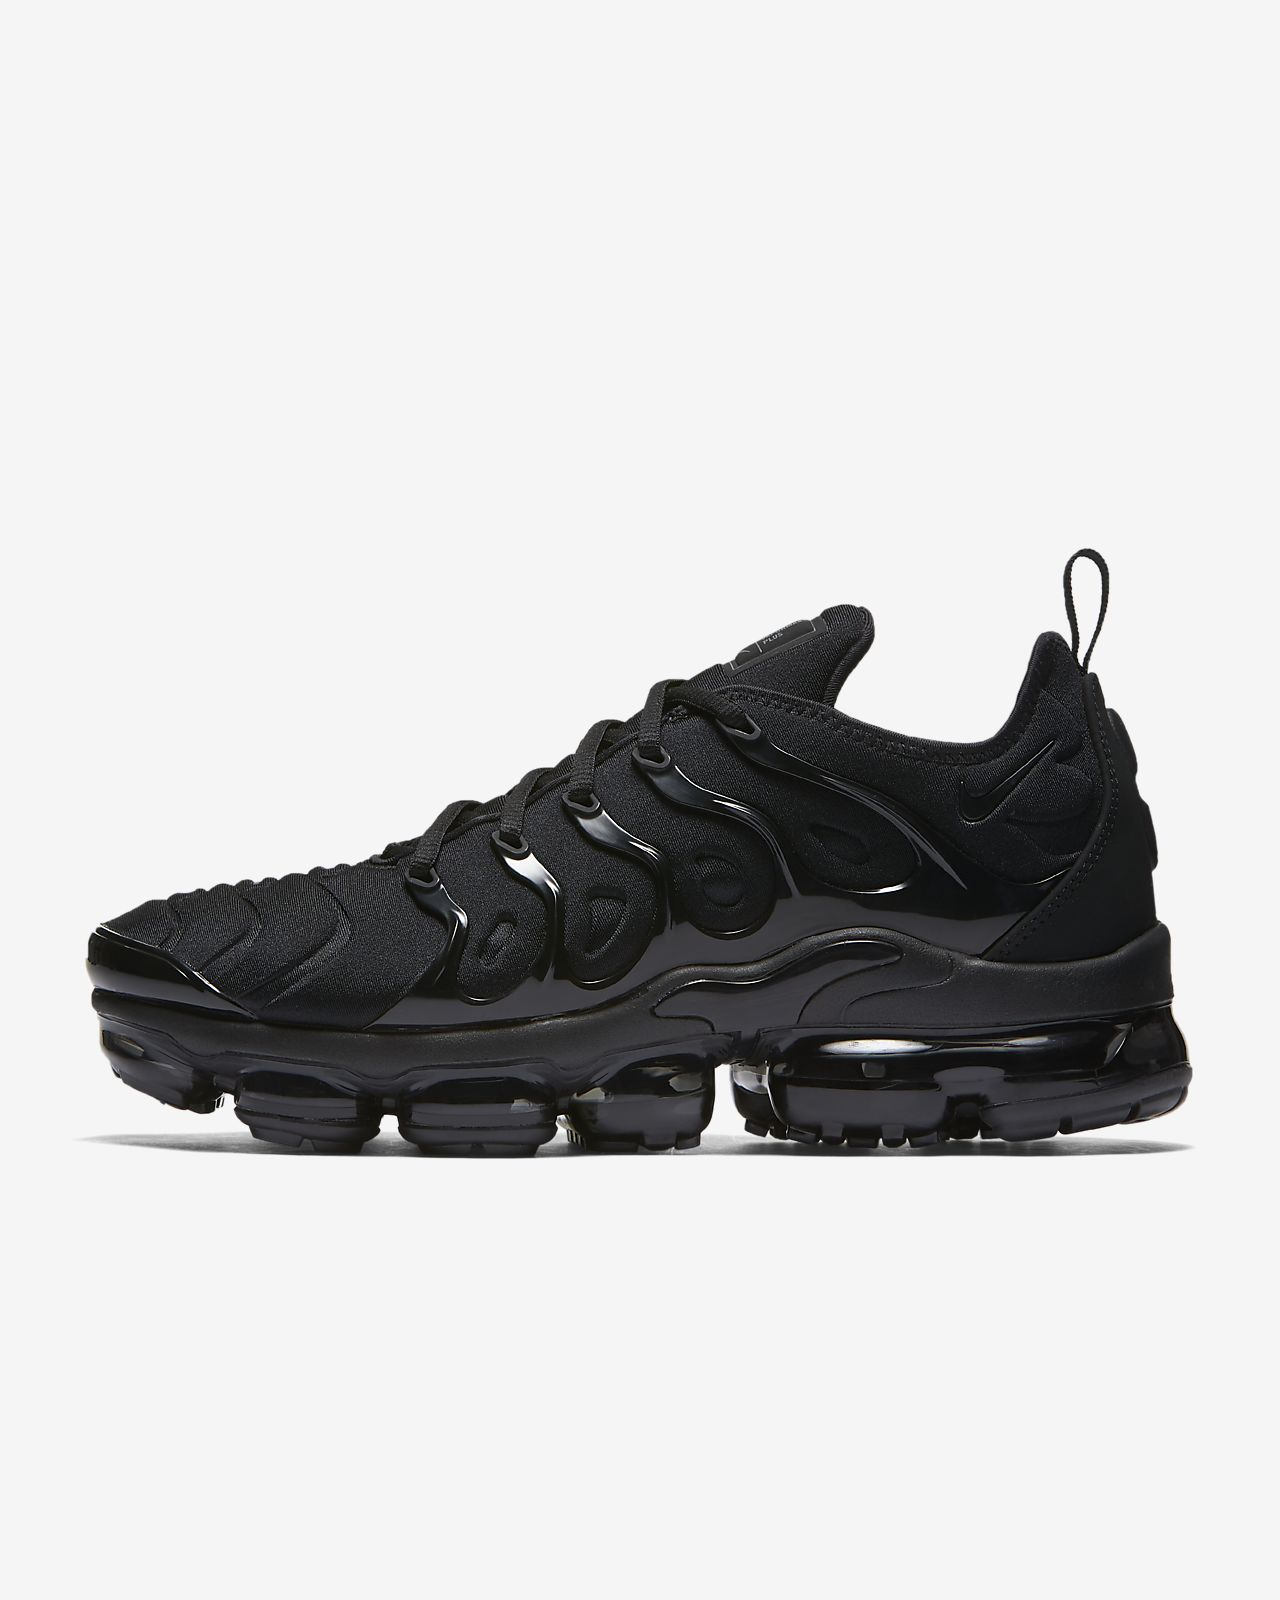 1971b2e2f878a Nike Air VaporMax Plus Men's Shoe. Nike.com